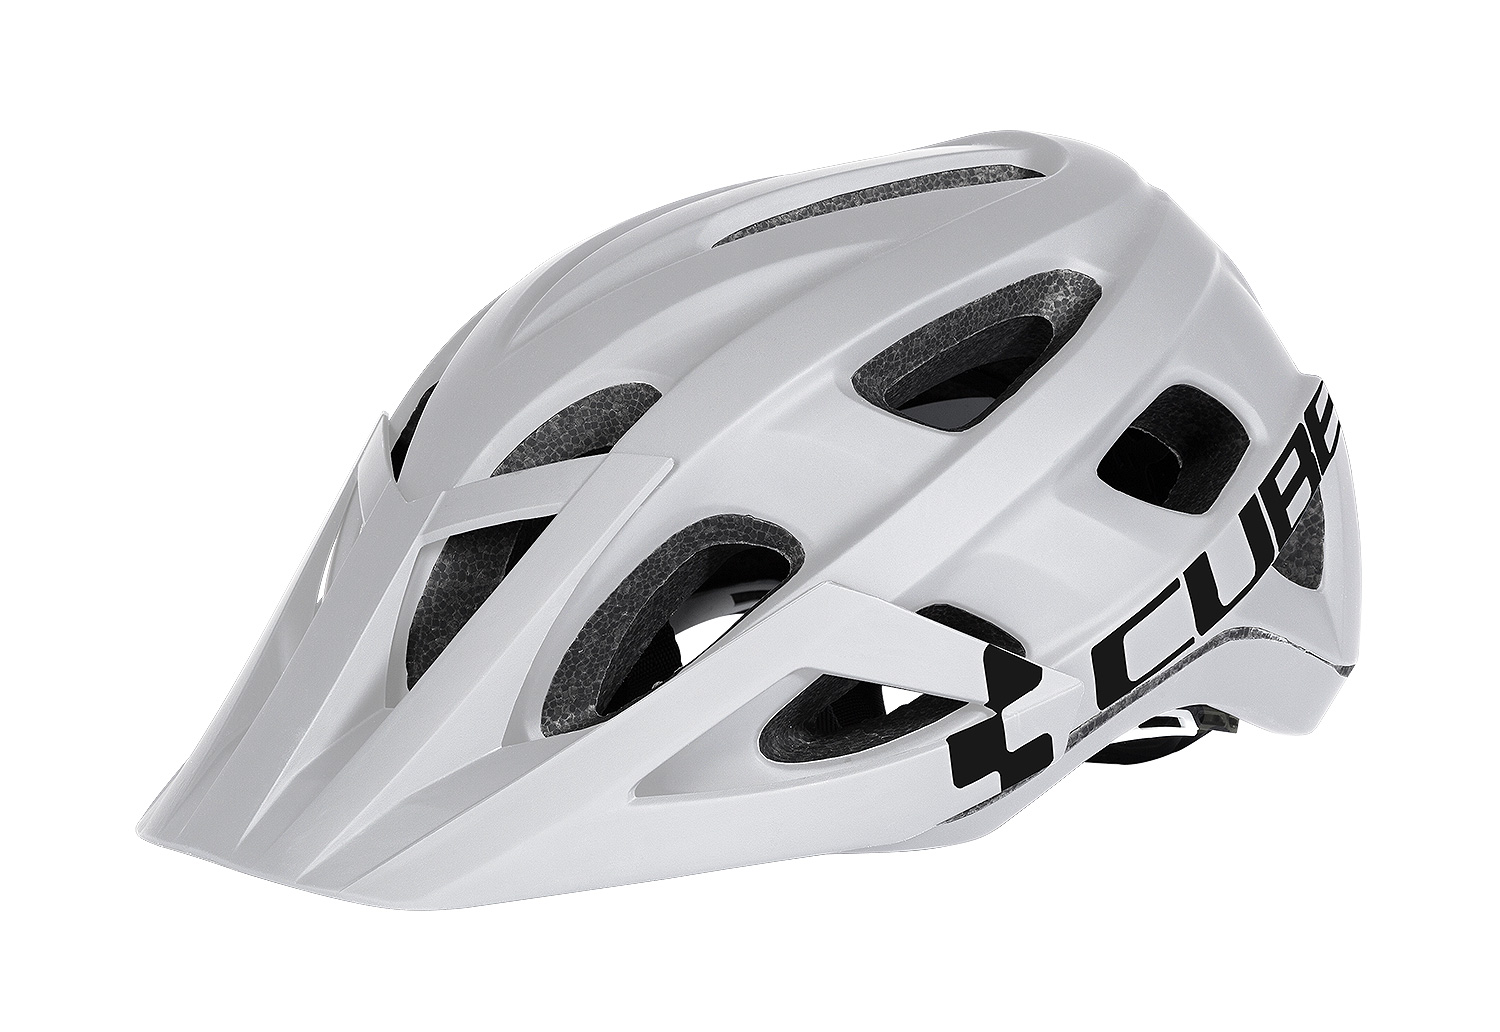 Kaciga Cube AM RACE White/Black 16046